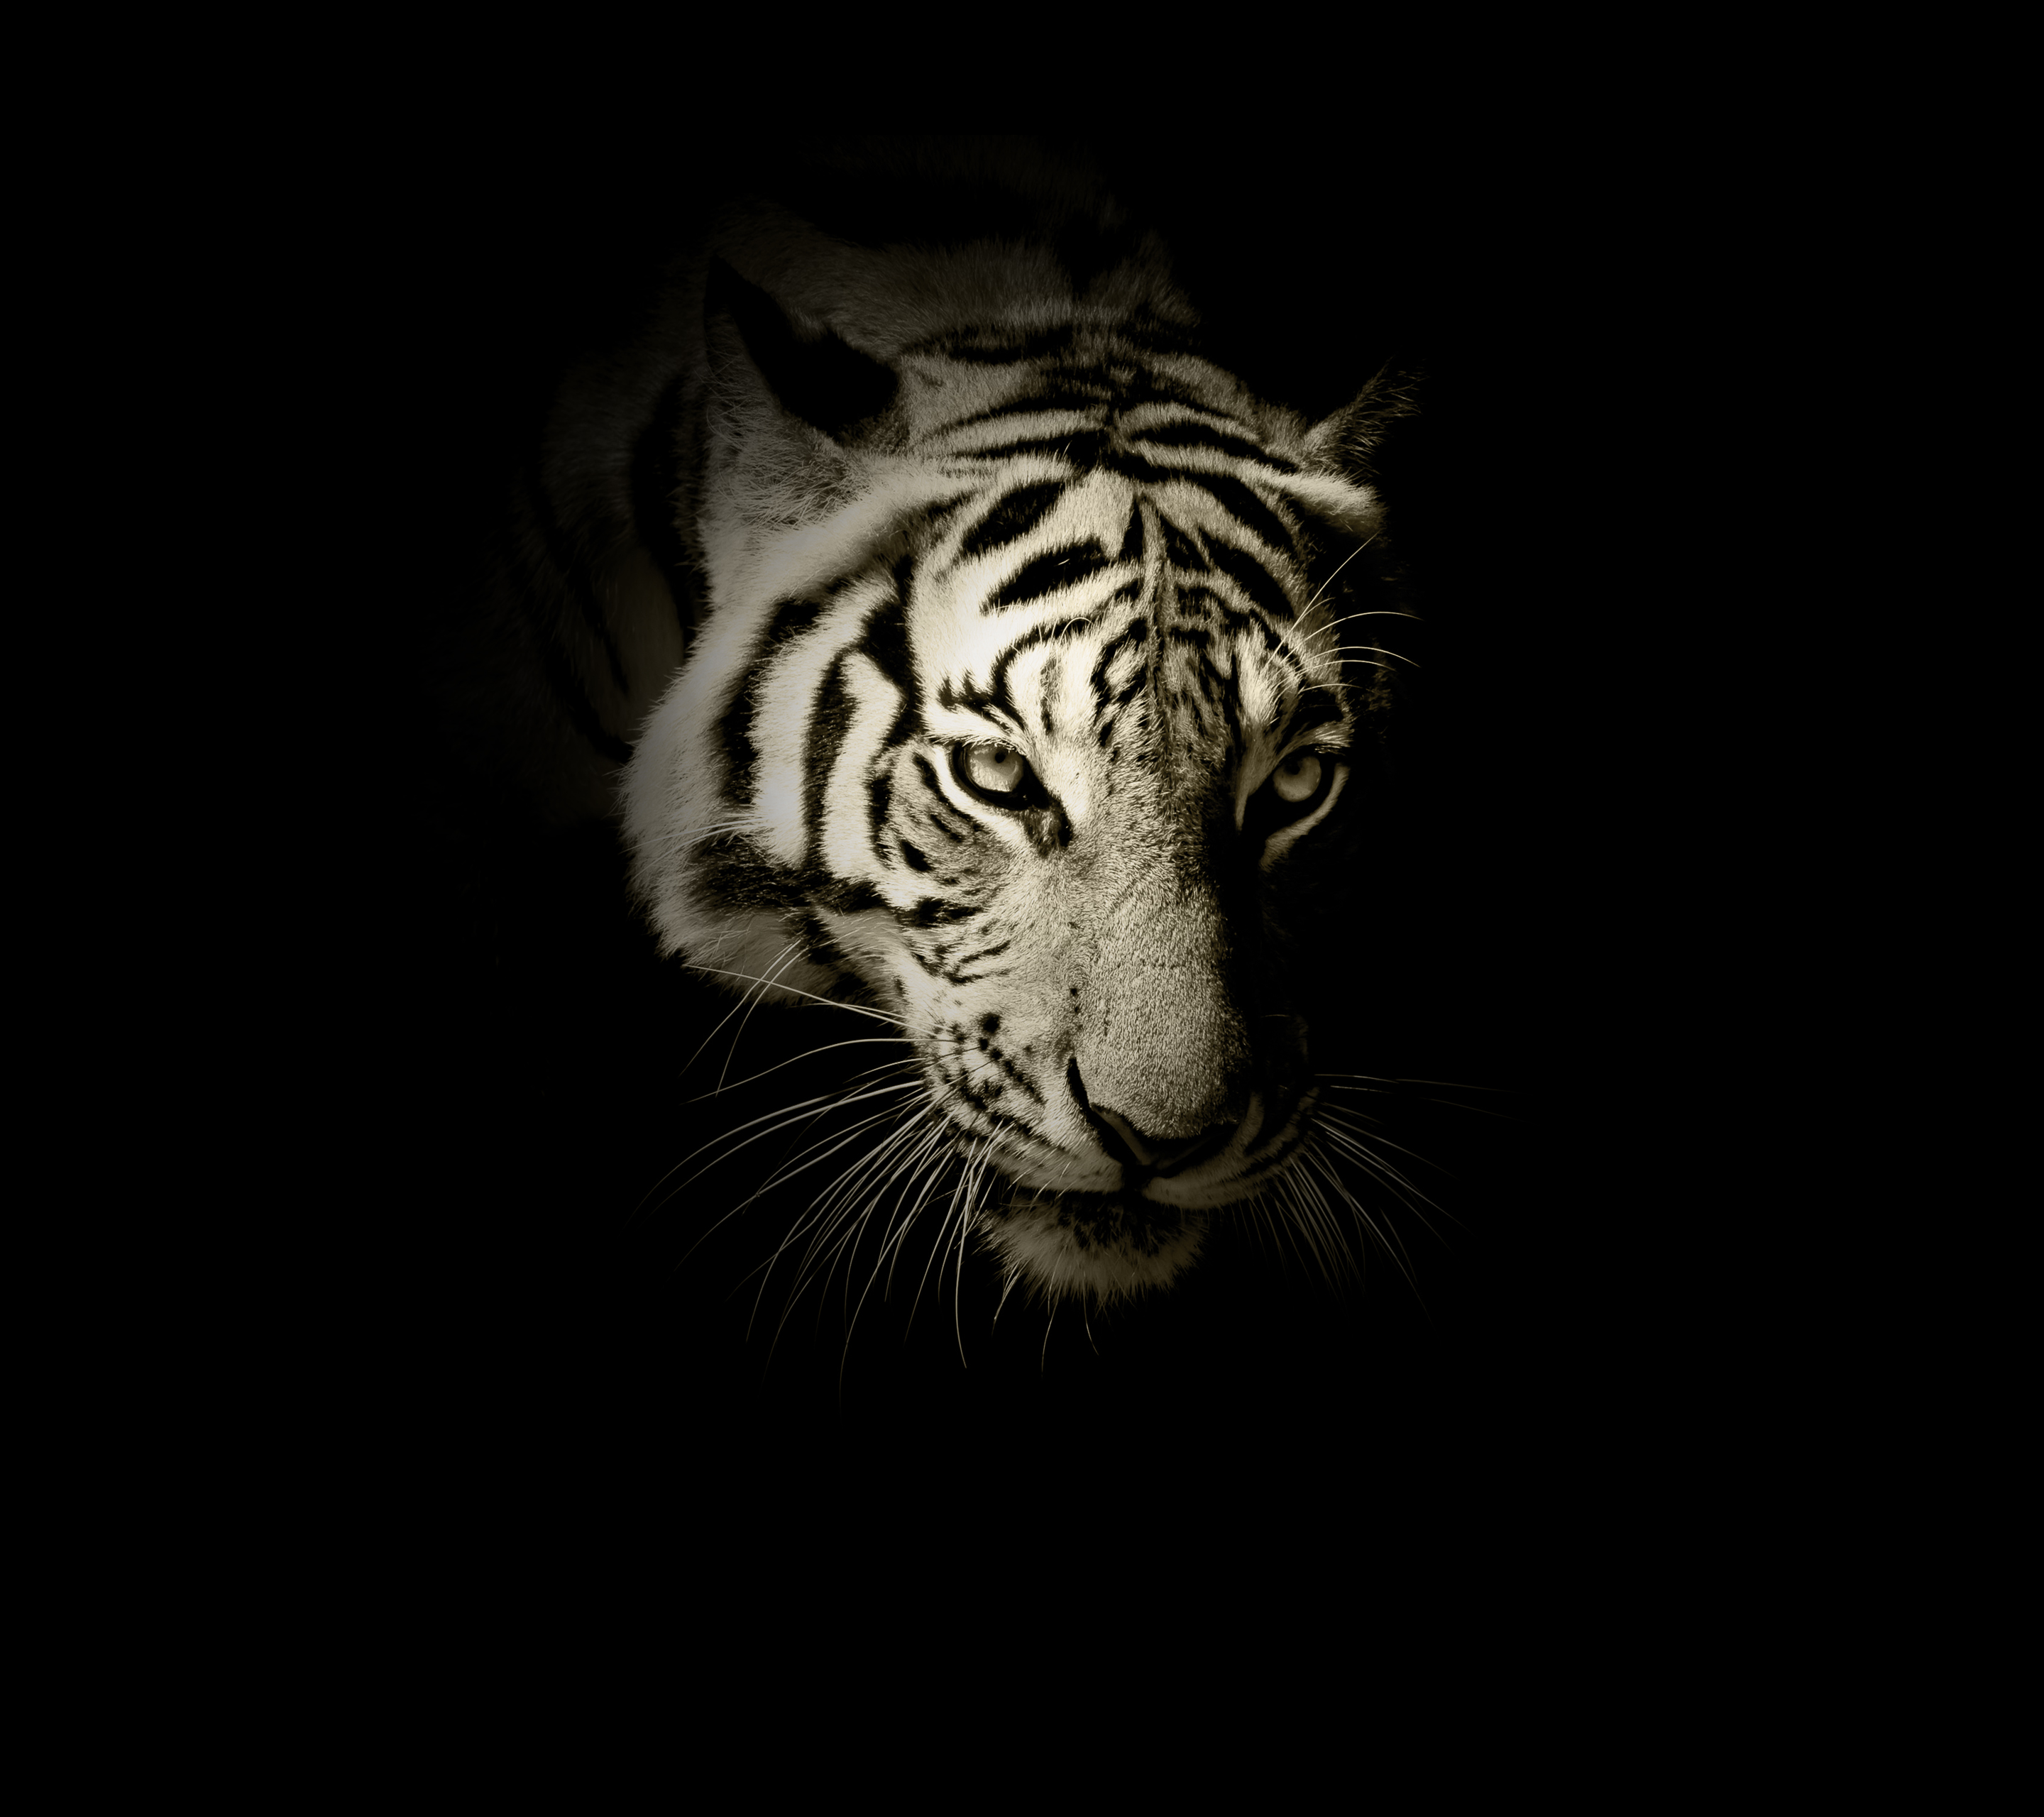 Tiger Wallpaper 172 2880x2560 Pixel Wallpaperpass